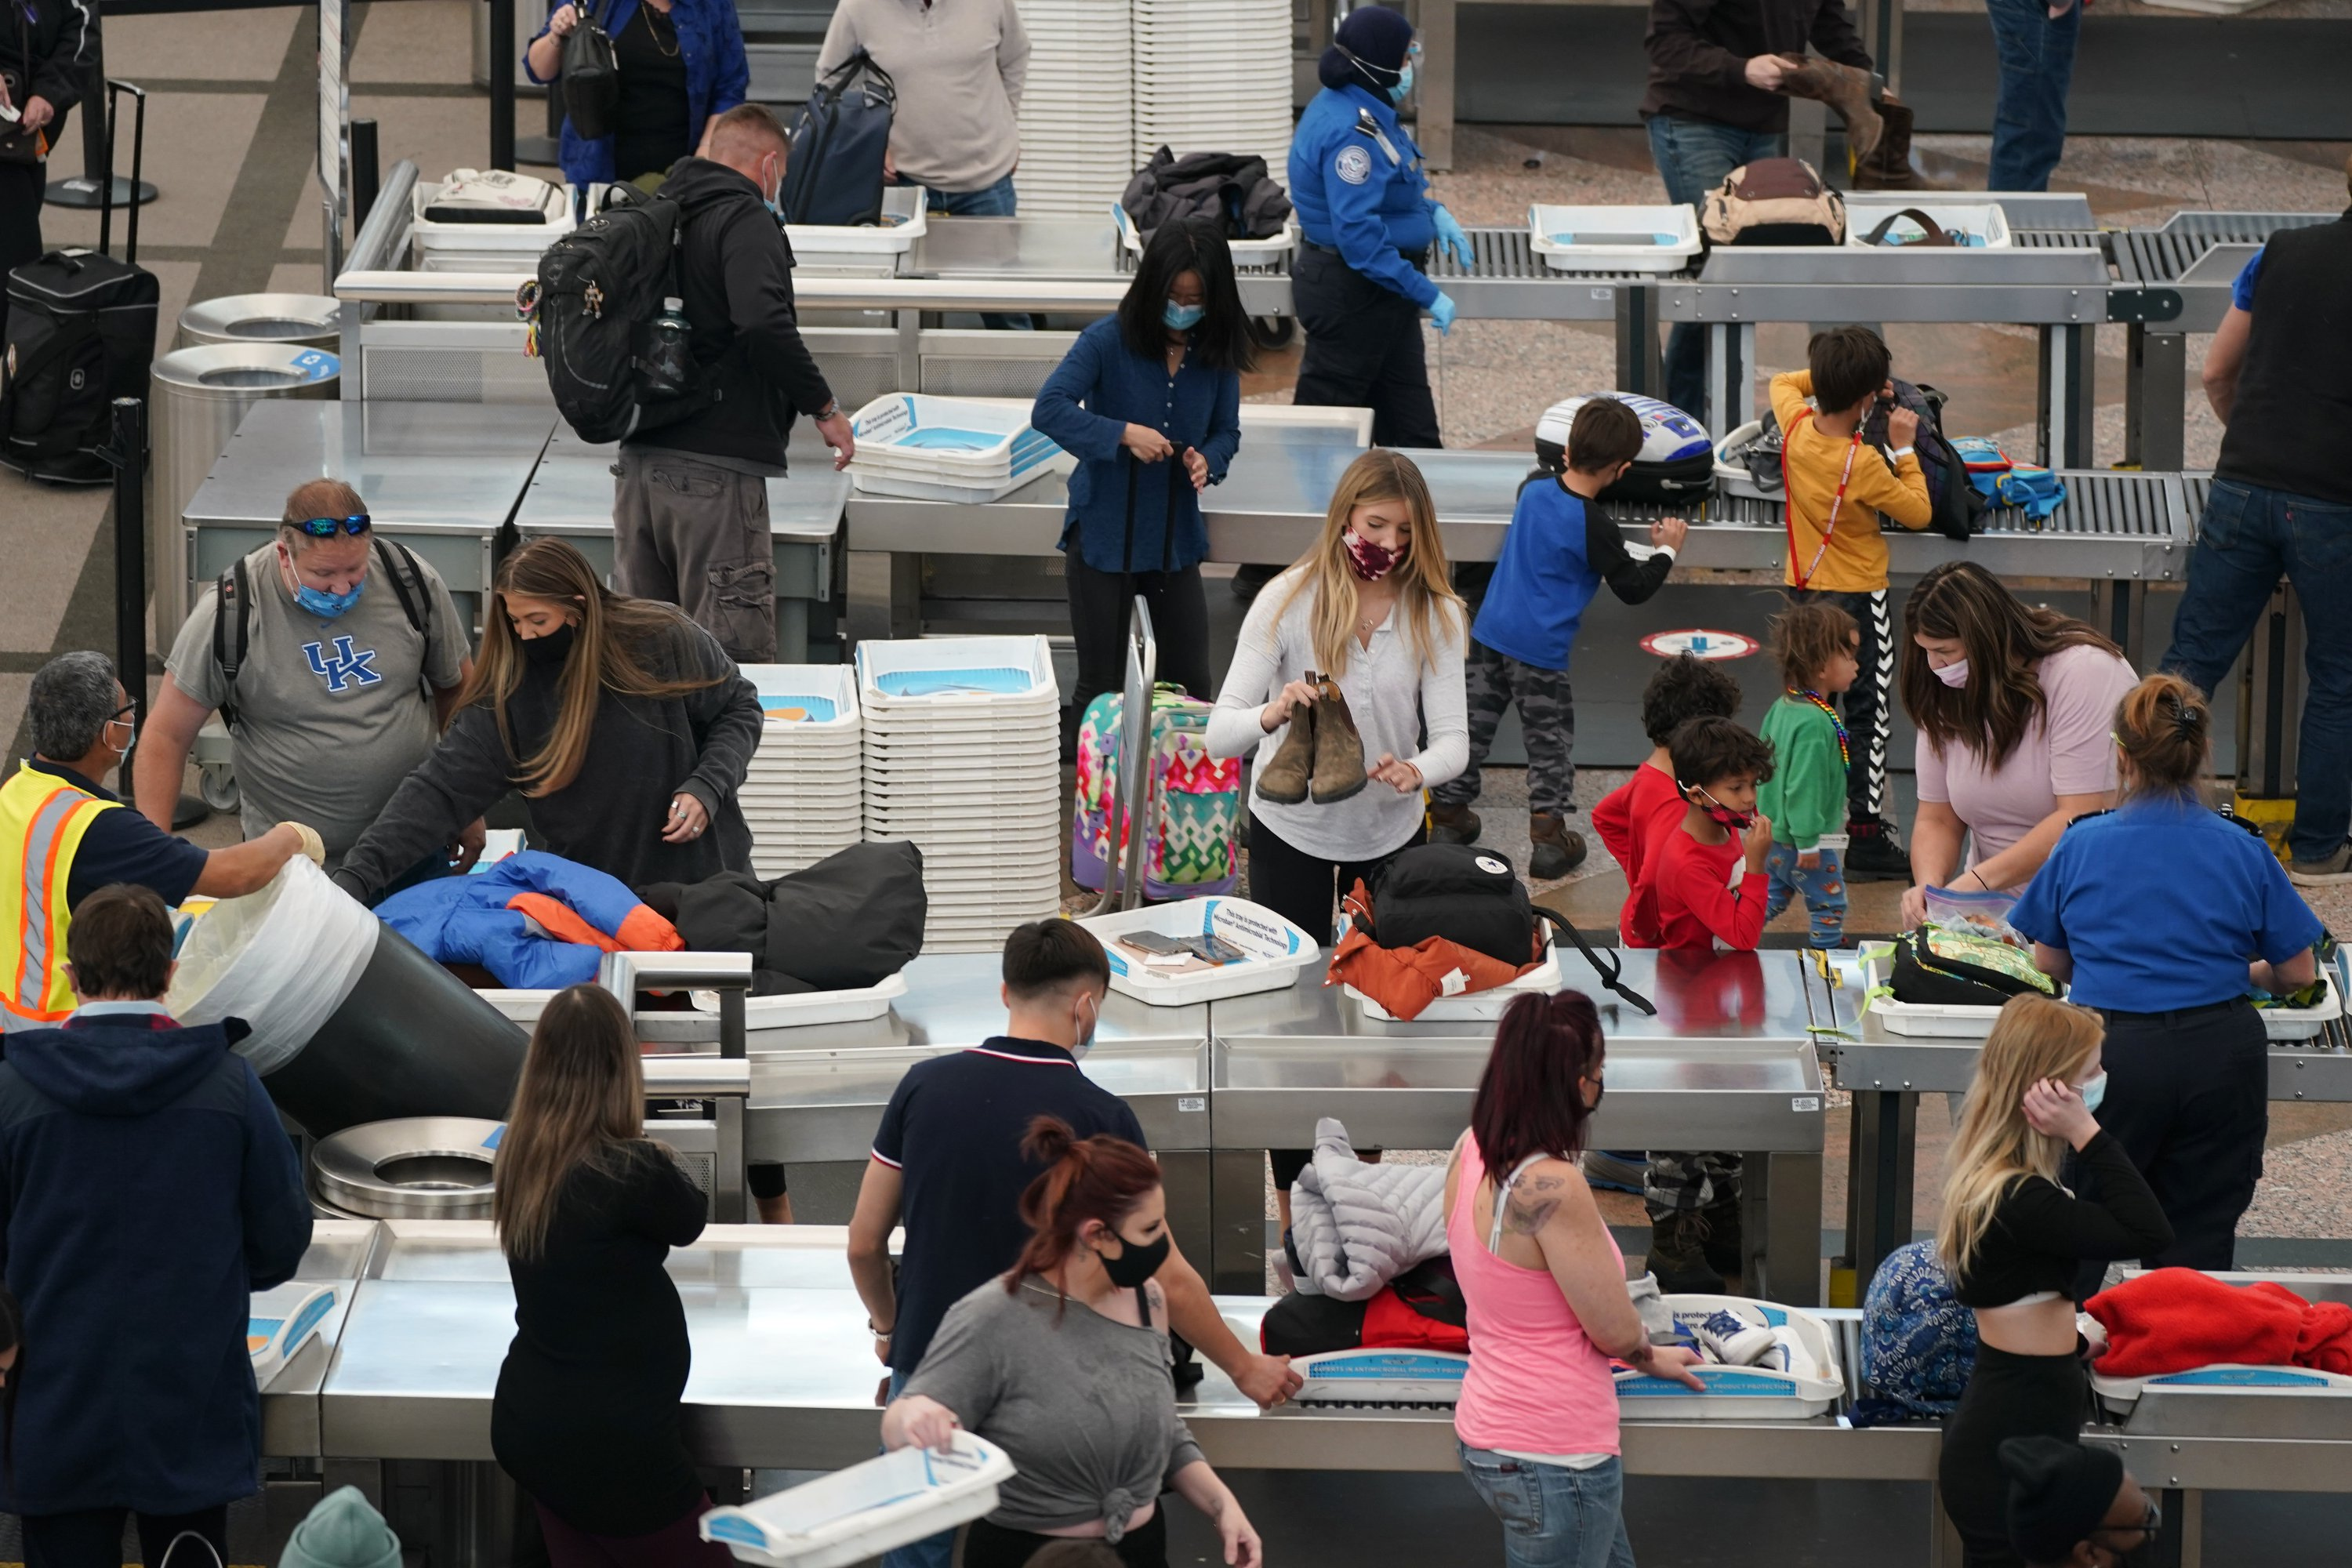 'Mom's Worth It': Americans Opt for Holiday Travel as COVID-19 Cases Surge